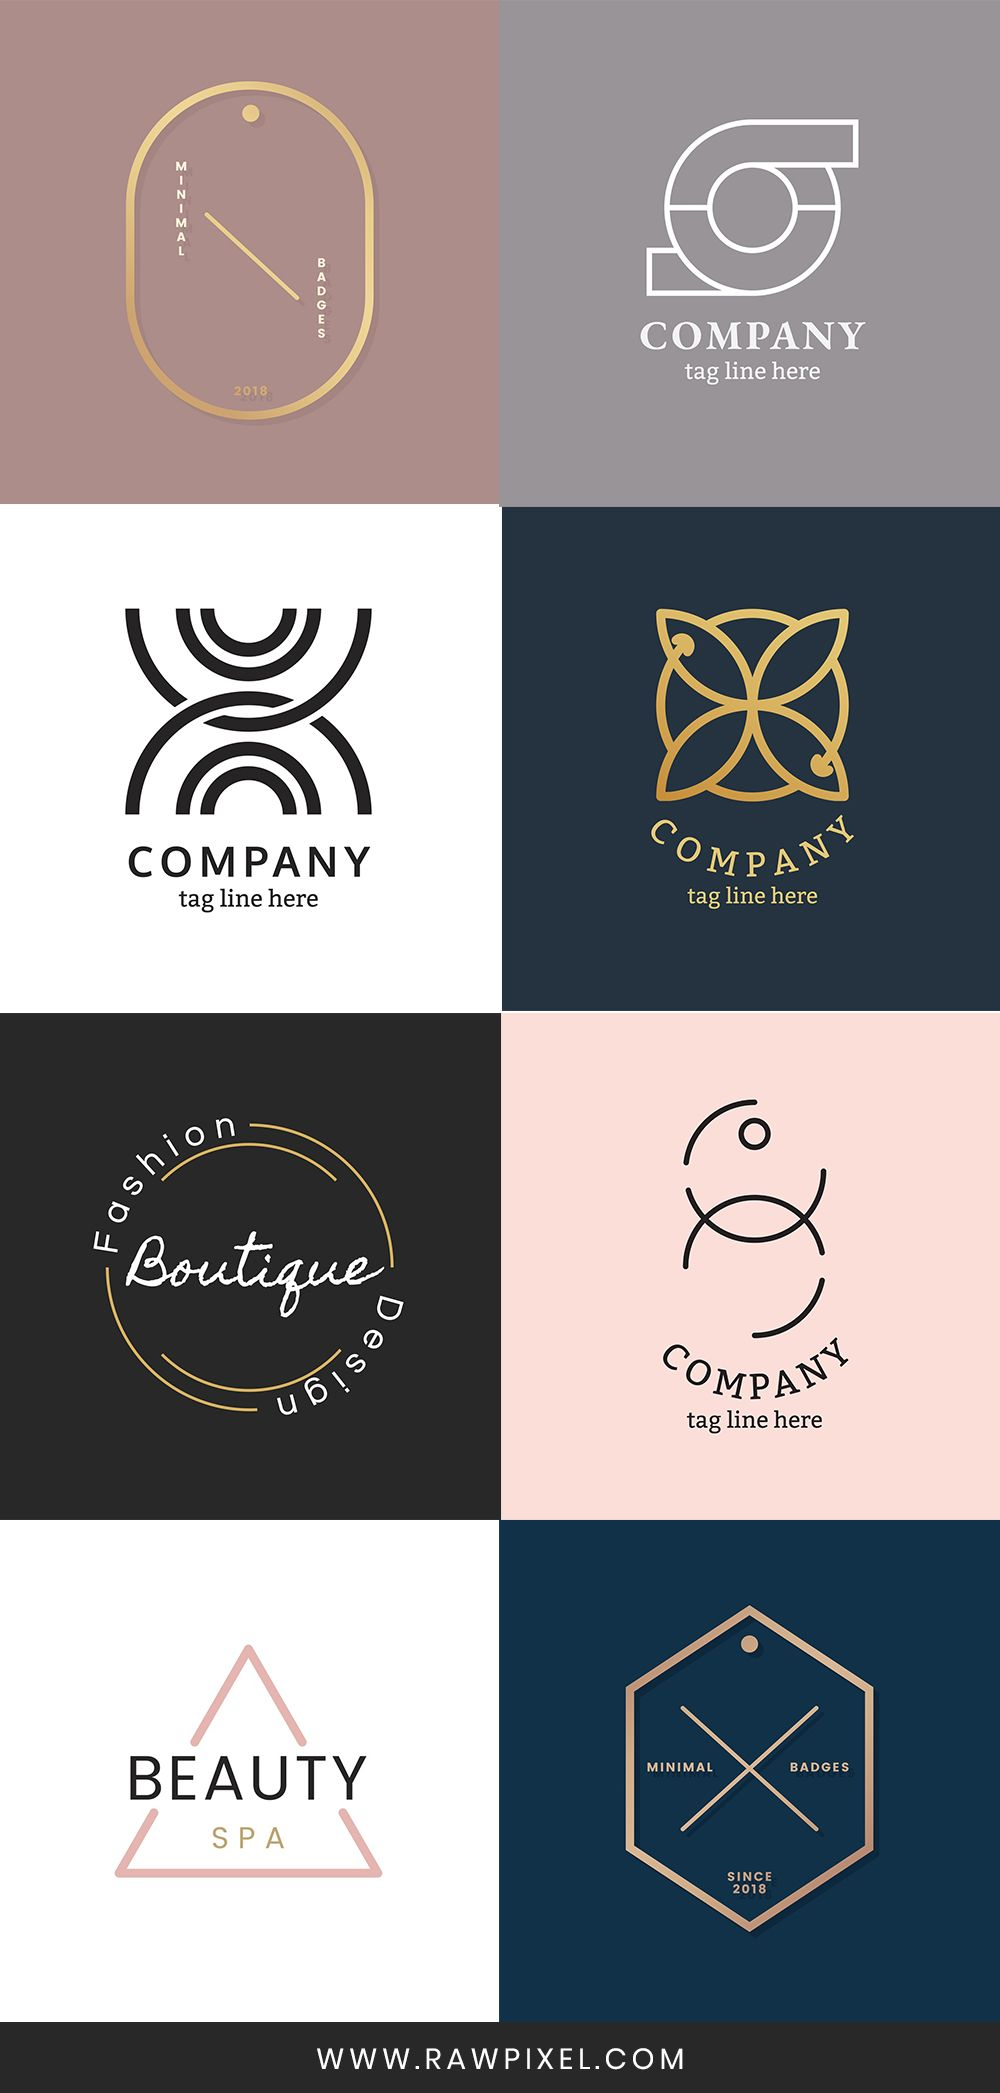 Get Free Luxurious And Classic Corporate Logo Vectors At Rawpixel Com Corporate Logo Corporate Logo Design Initials Logo Design